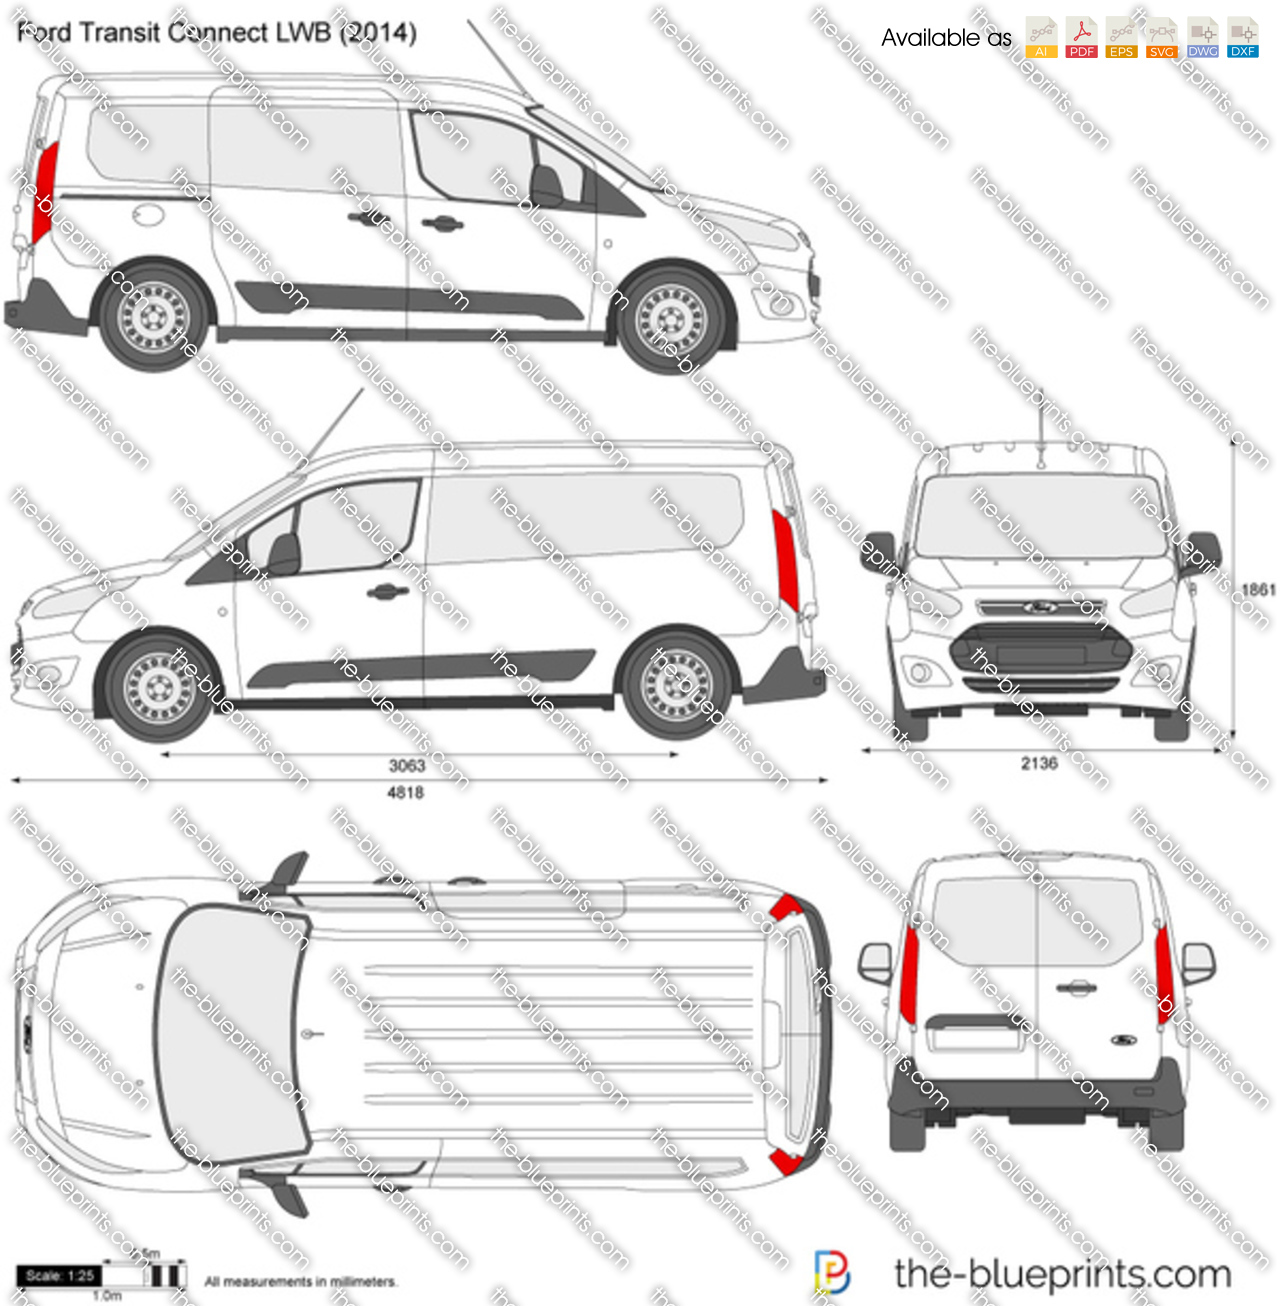 Ford Transit Connect LWB 2015